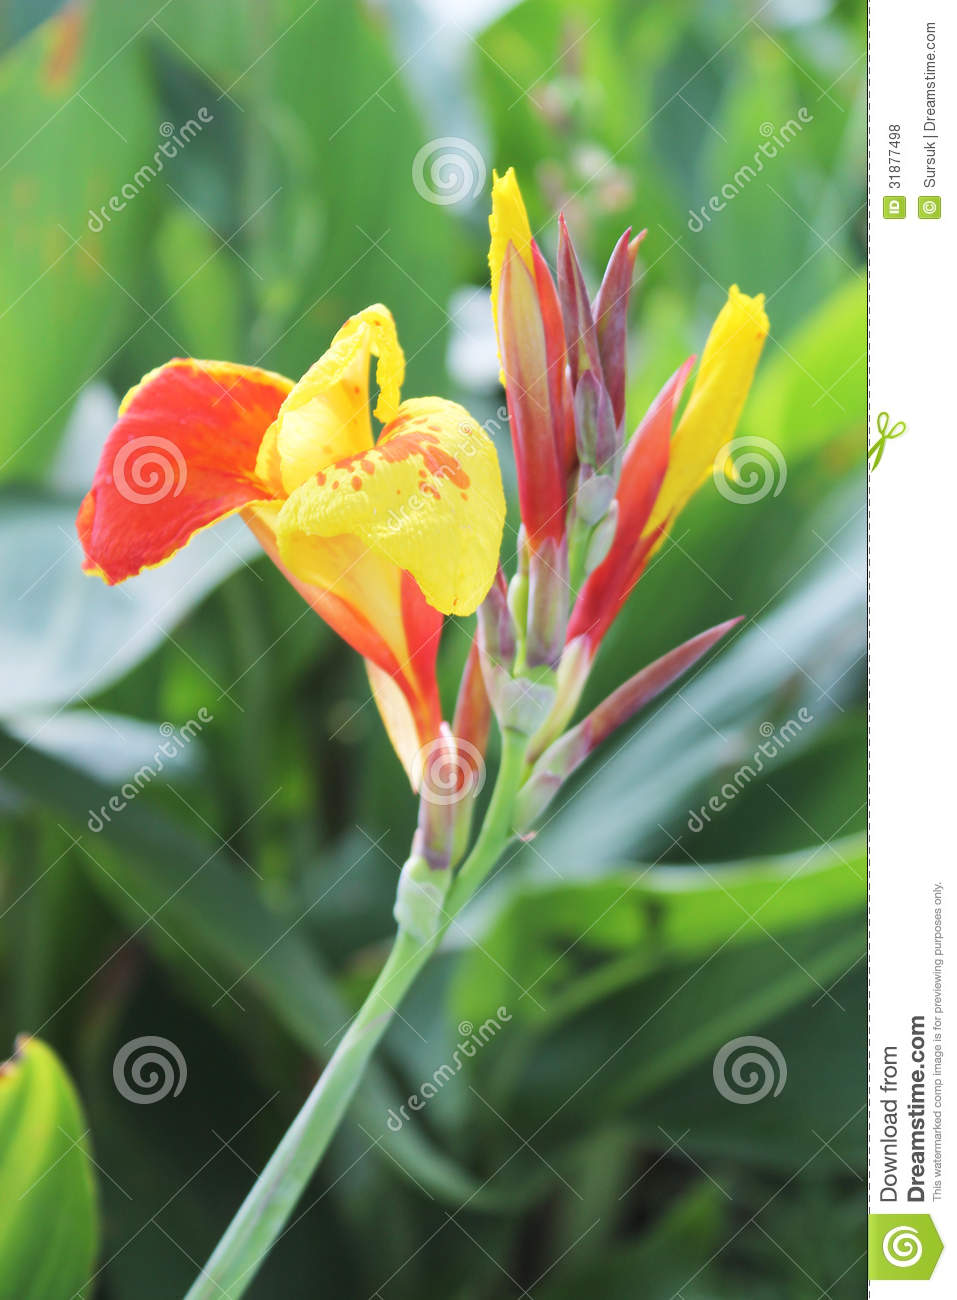 Yellow and red canna flowers and buds stock photo image of canna yellow and red canna flowers and buds mightylinksfo